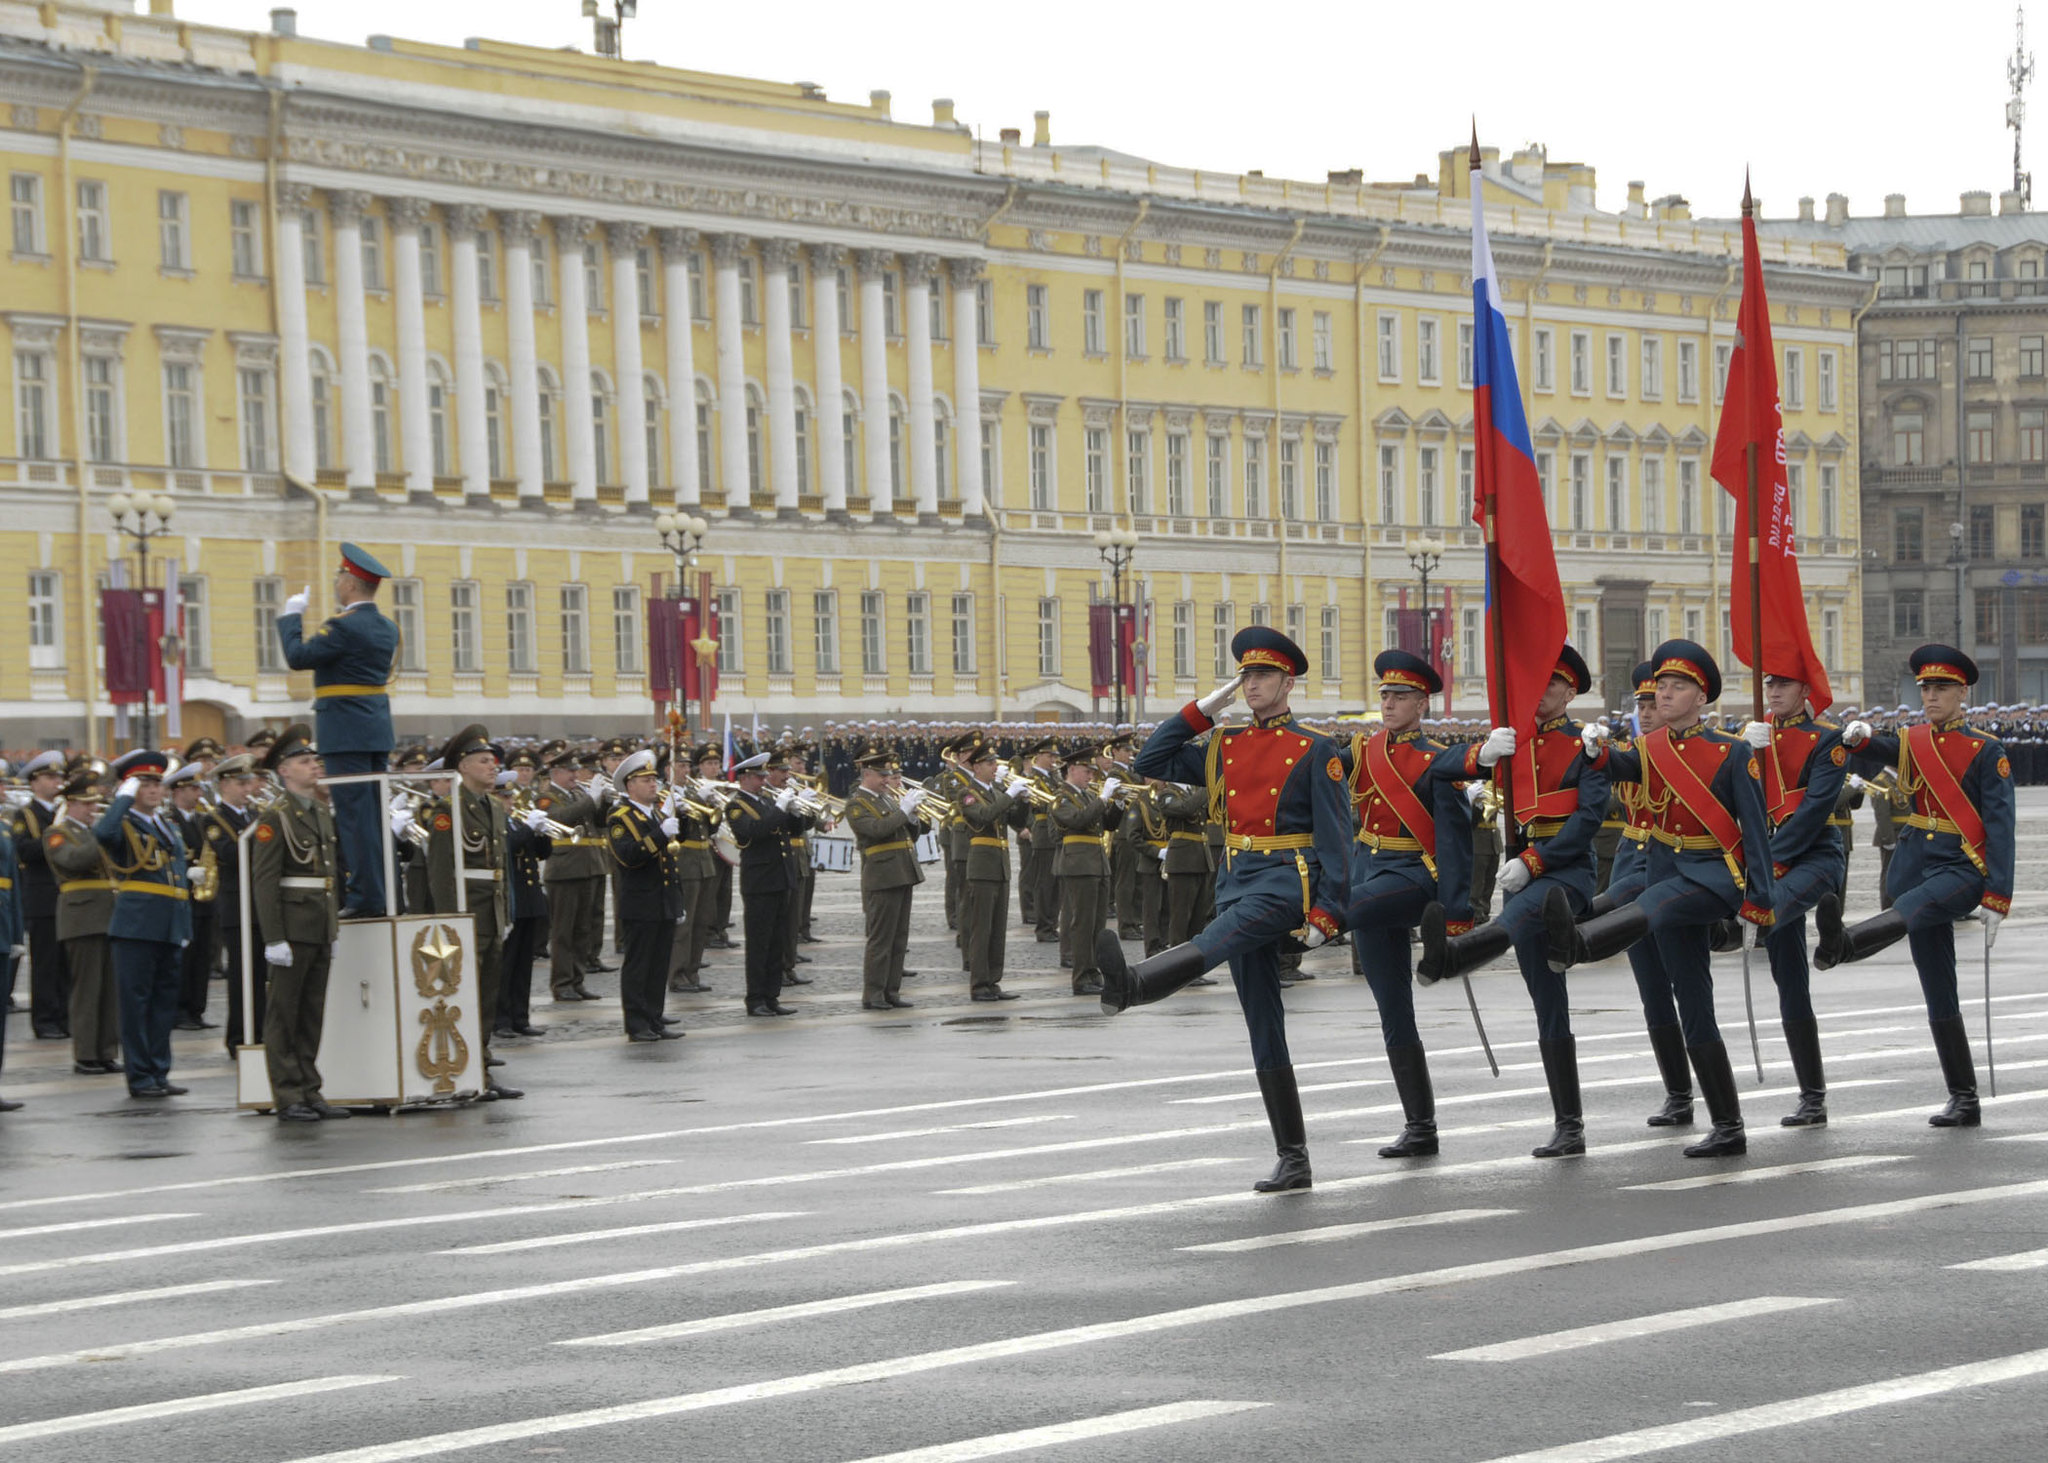 May 9, 2002: Terrorists bomb Victory Day celebration in Dagestan